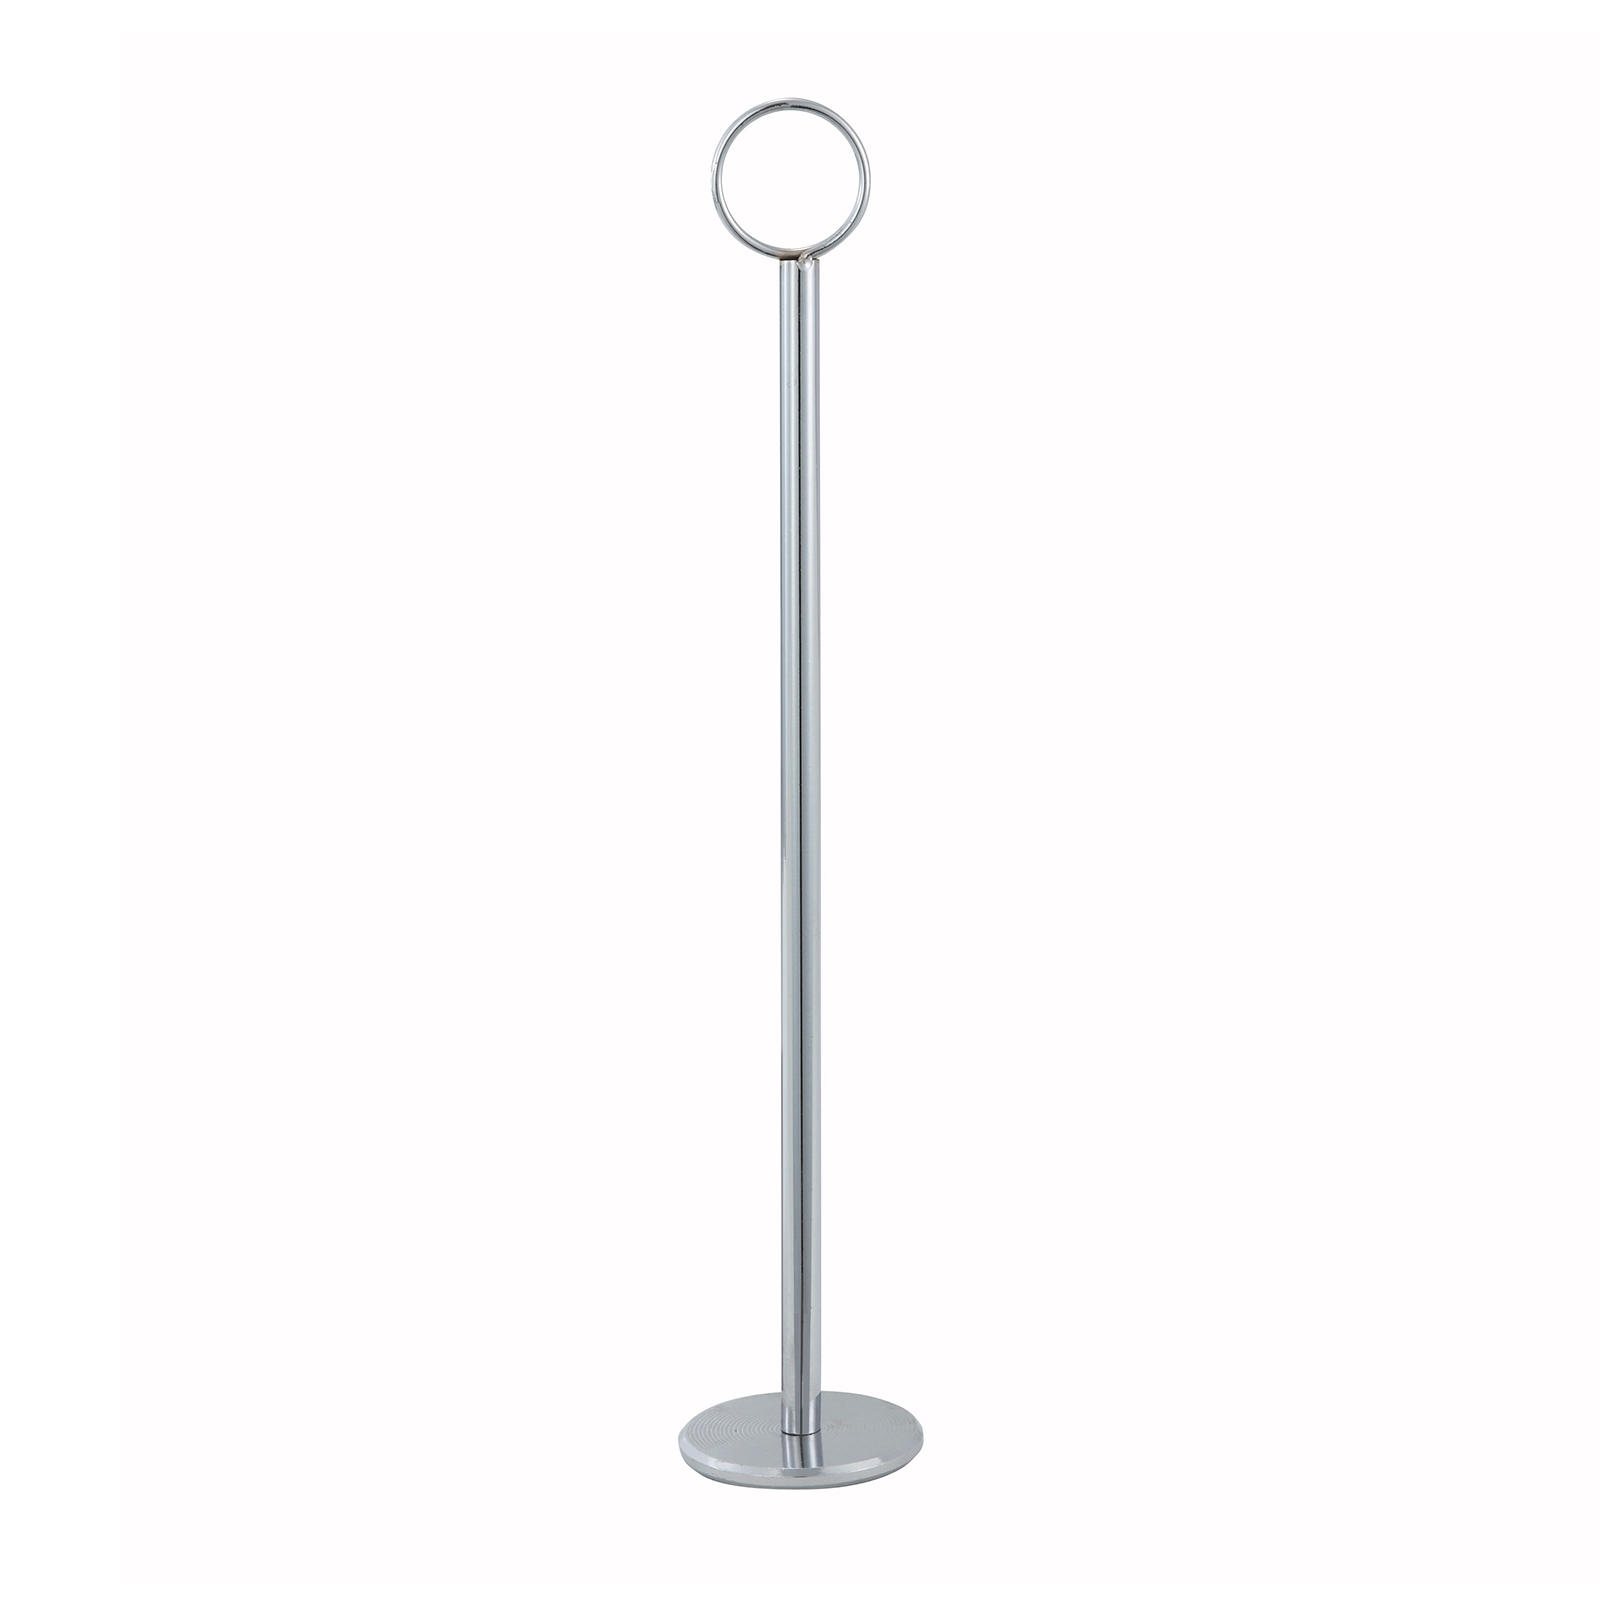 3107-12 Winco TBH-12 menu card holder / number stand